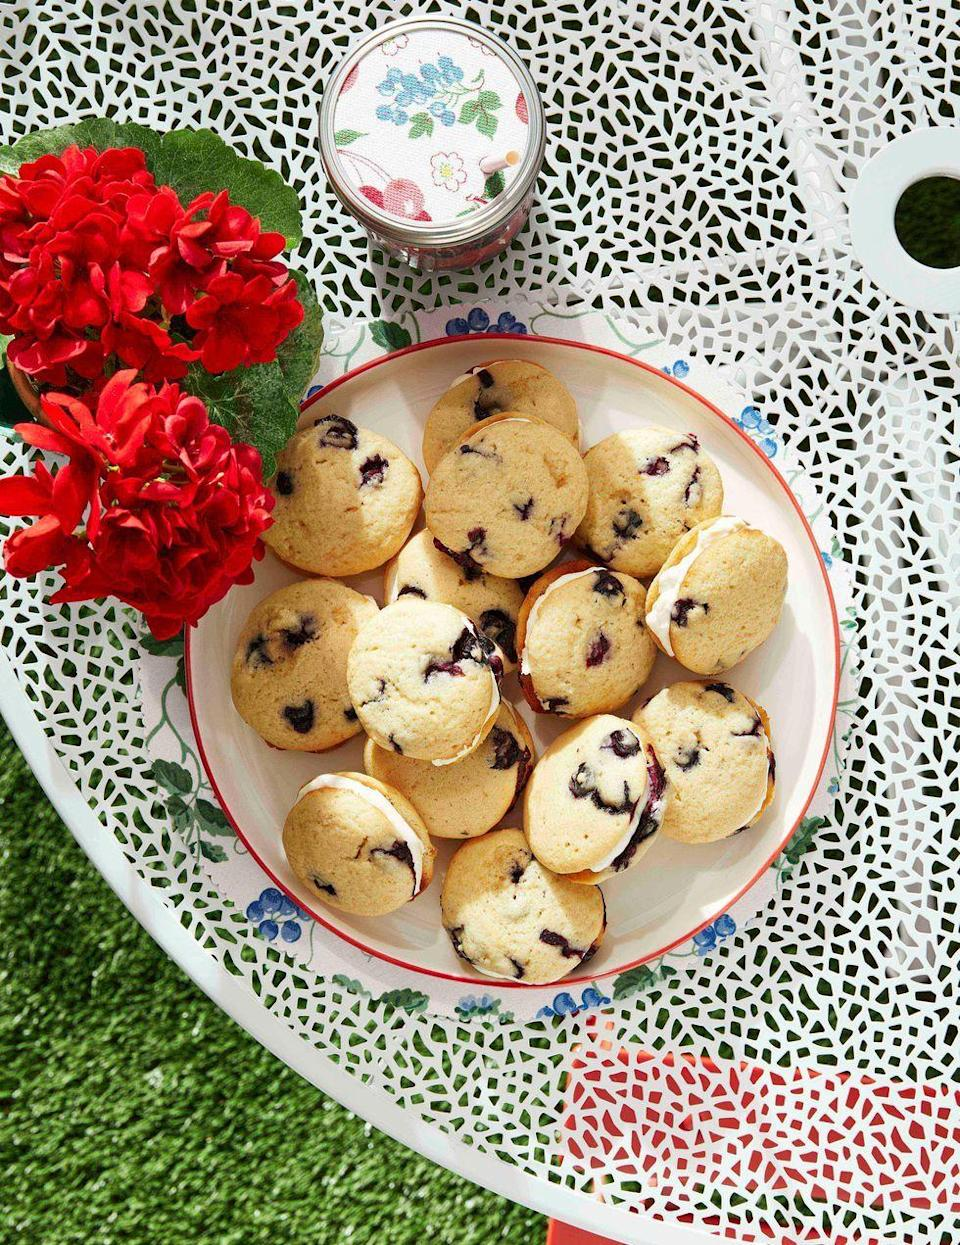 """<p>Soft cookies filled with the seasons ripest blueberries get sandwiched with a tangy mascarpone filling. </p><p><strong><a href=""""https://www.countryliving.com/food-drinks/a32352585/blueberry-whoopie-pies/"""" rel=""""nofollow noopener"""" target=""""_blank"""" data-ylk=""""slk:Get the recipe"""" class=""""link rapid-noclick-resp"""">Get the recipe</a>.</strong> </p>"""